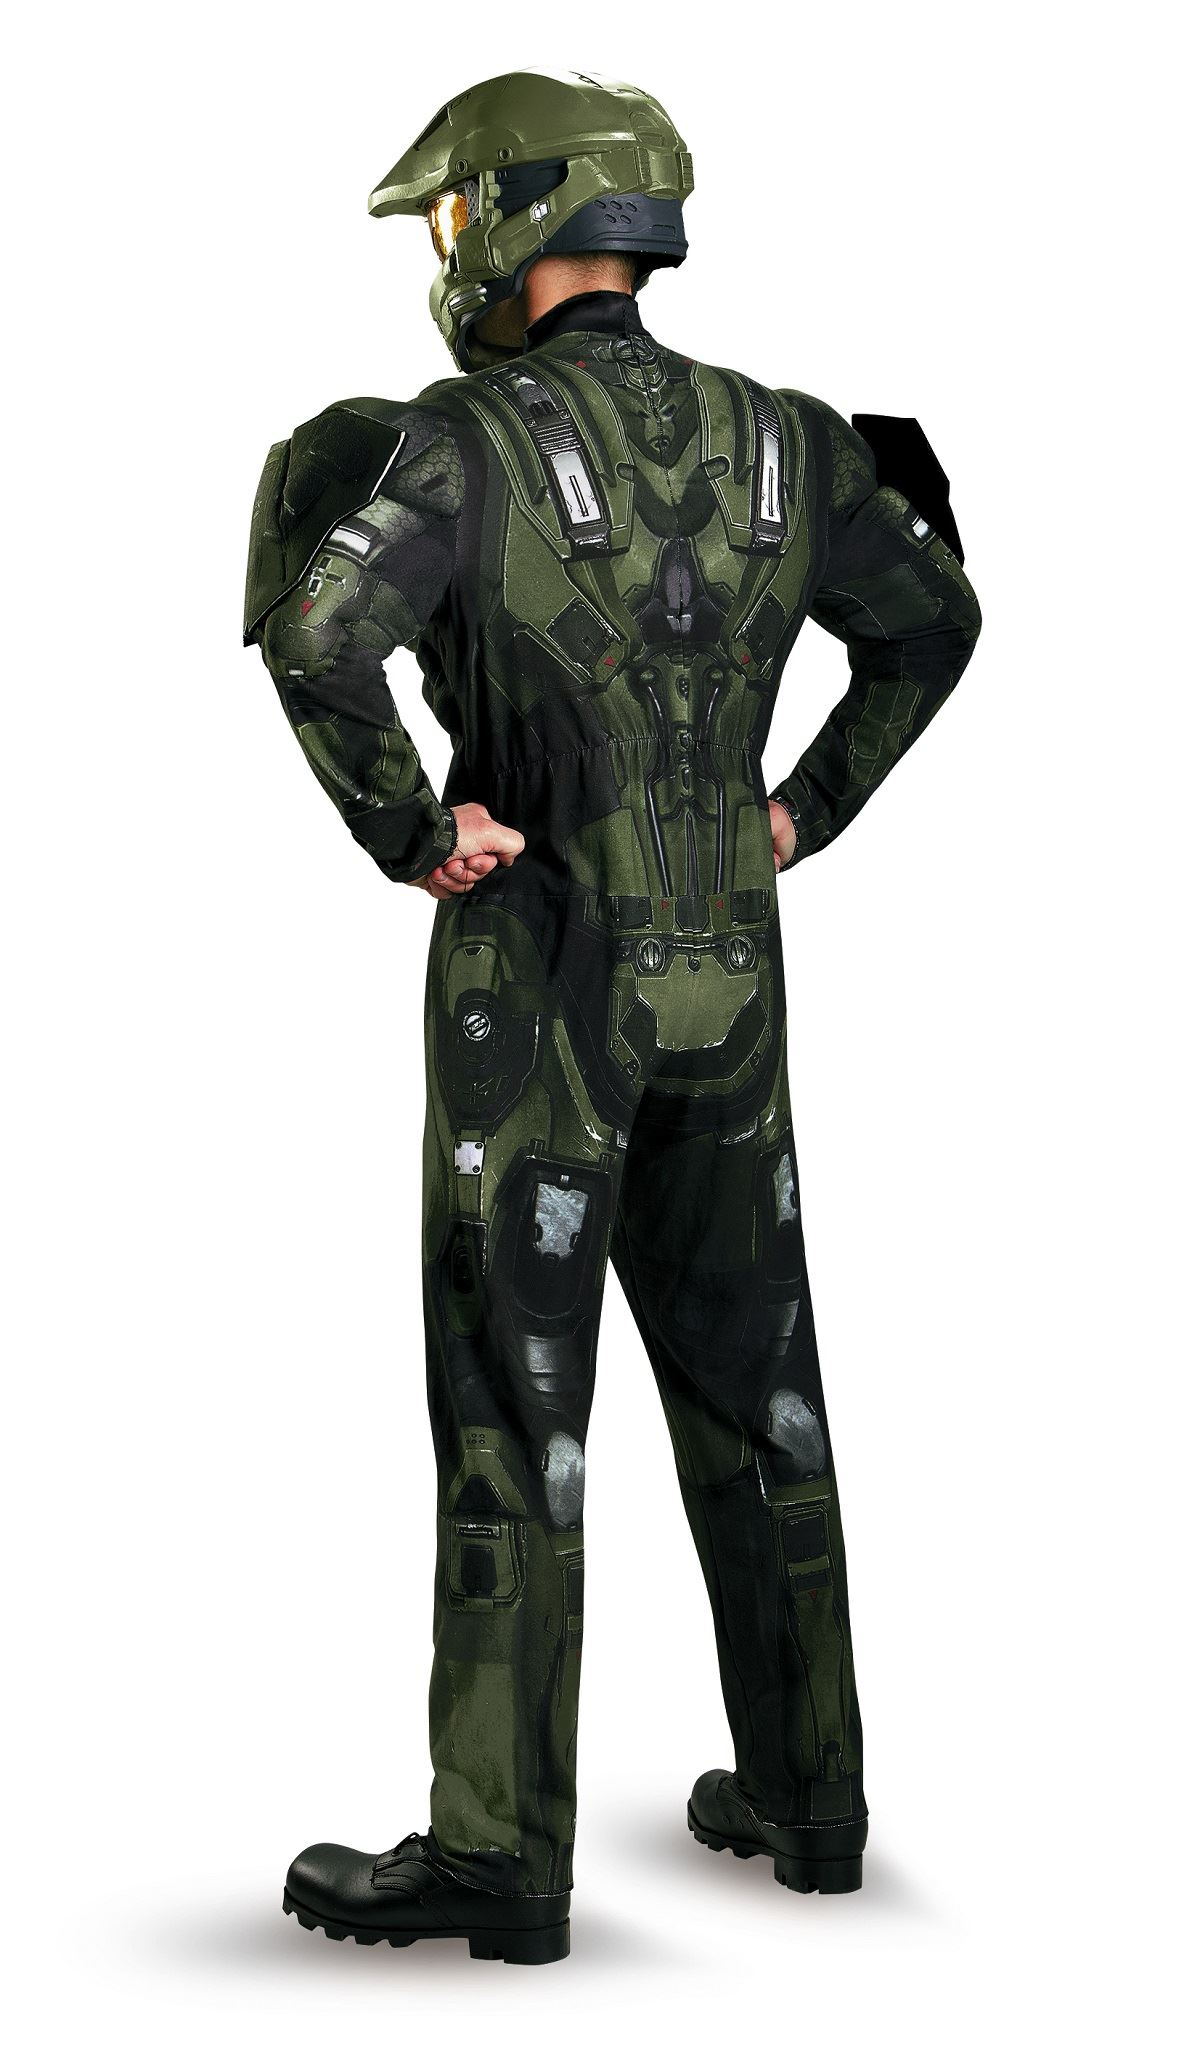 Adult Halo Master Chief Men Deluxe Costume  6999  The